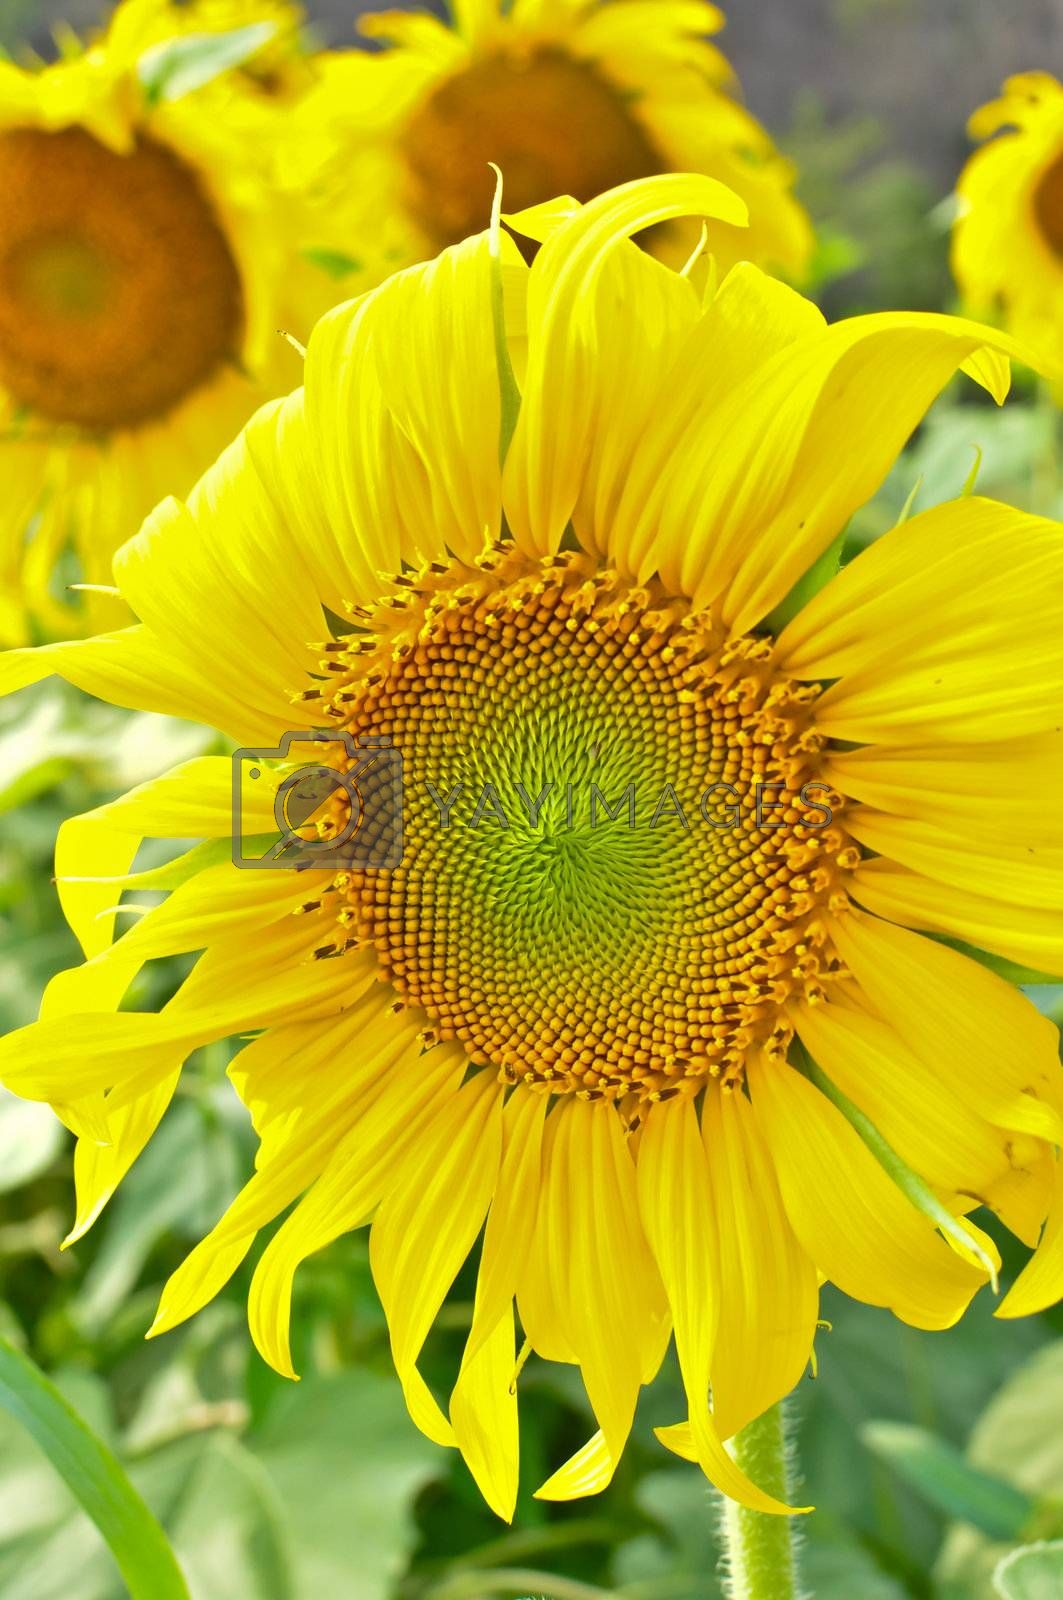 The vivid sun flower in the afternoon